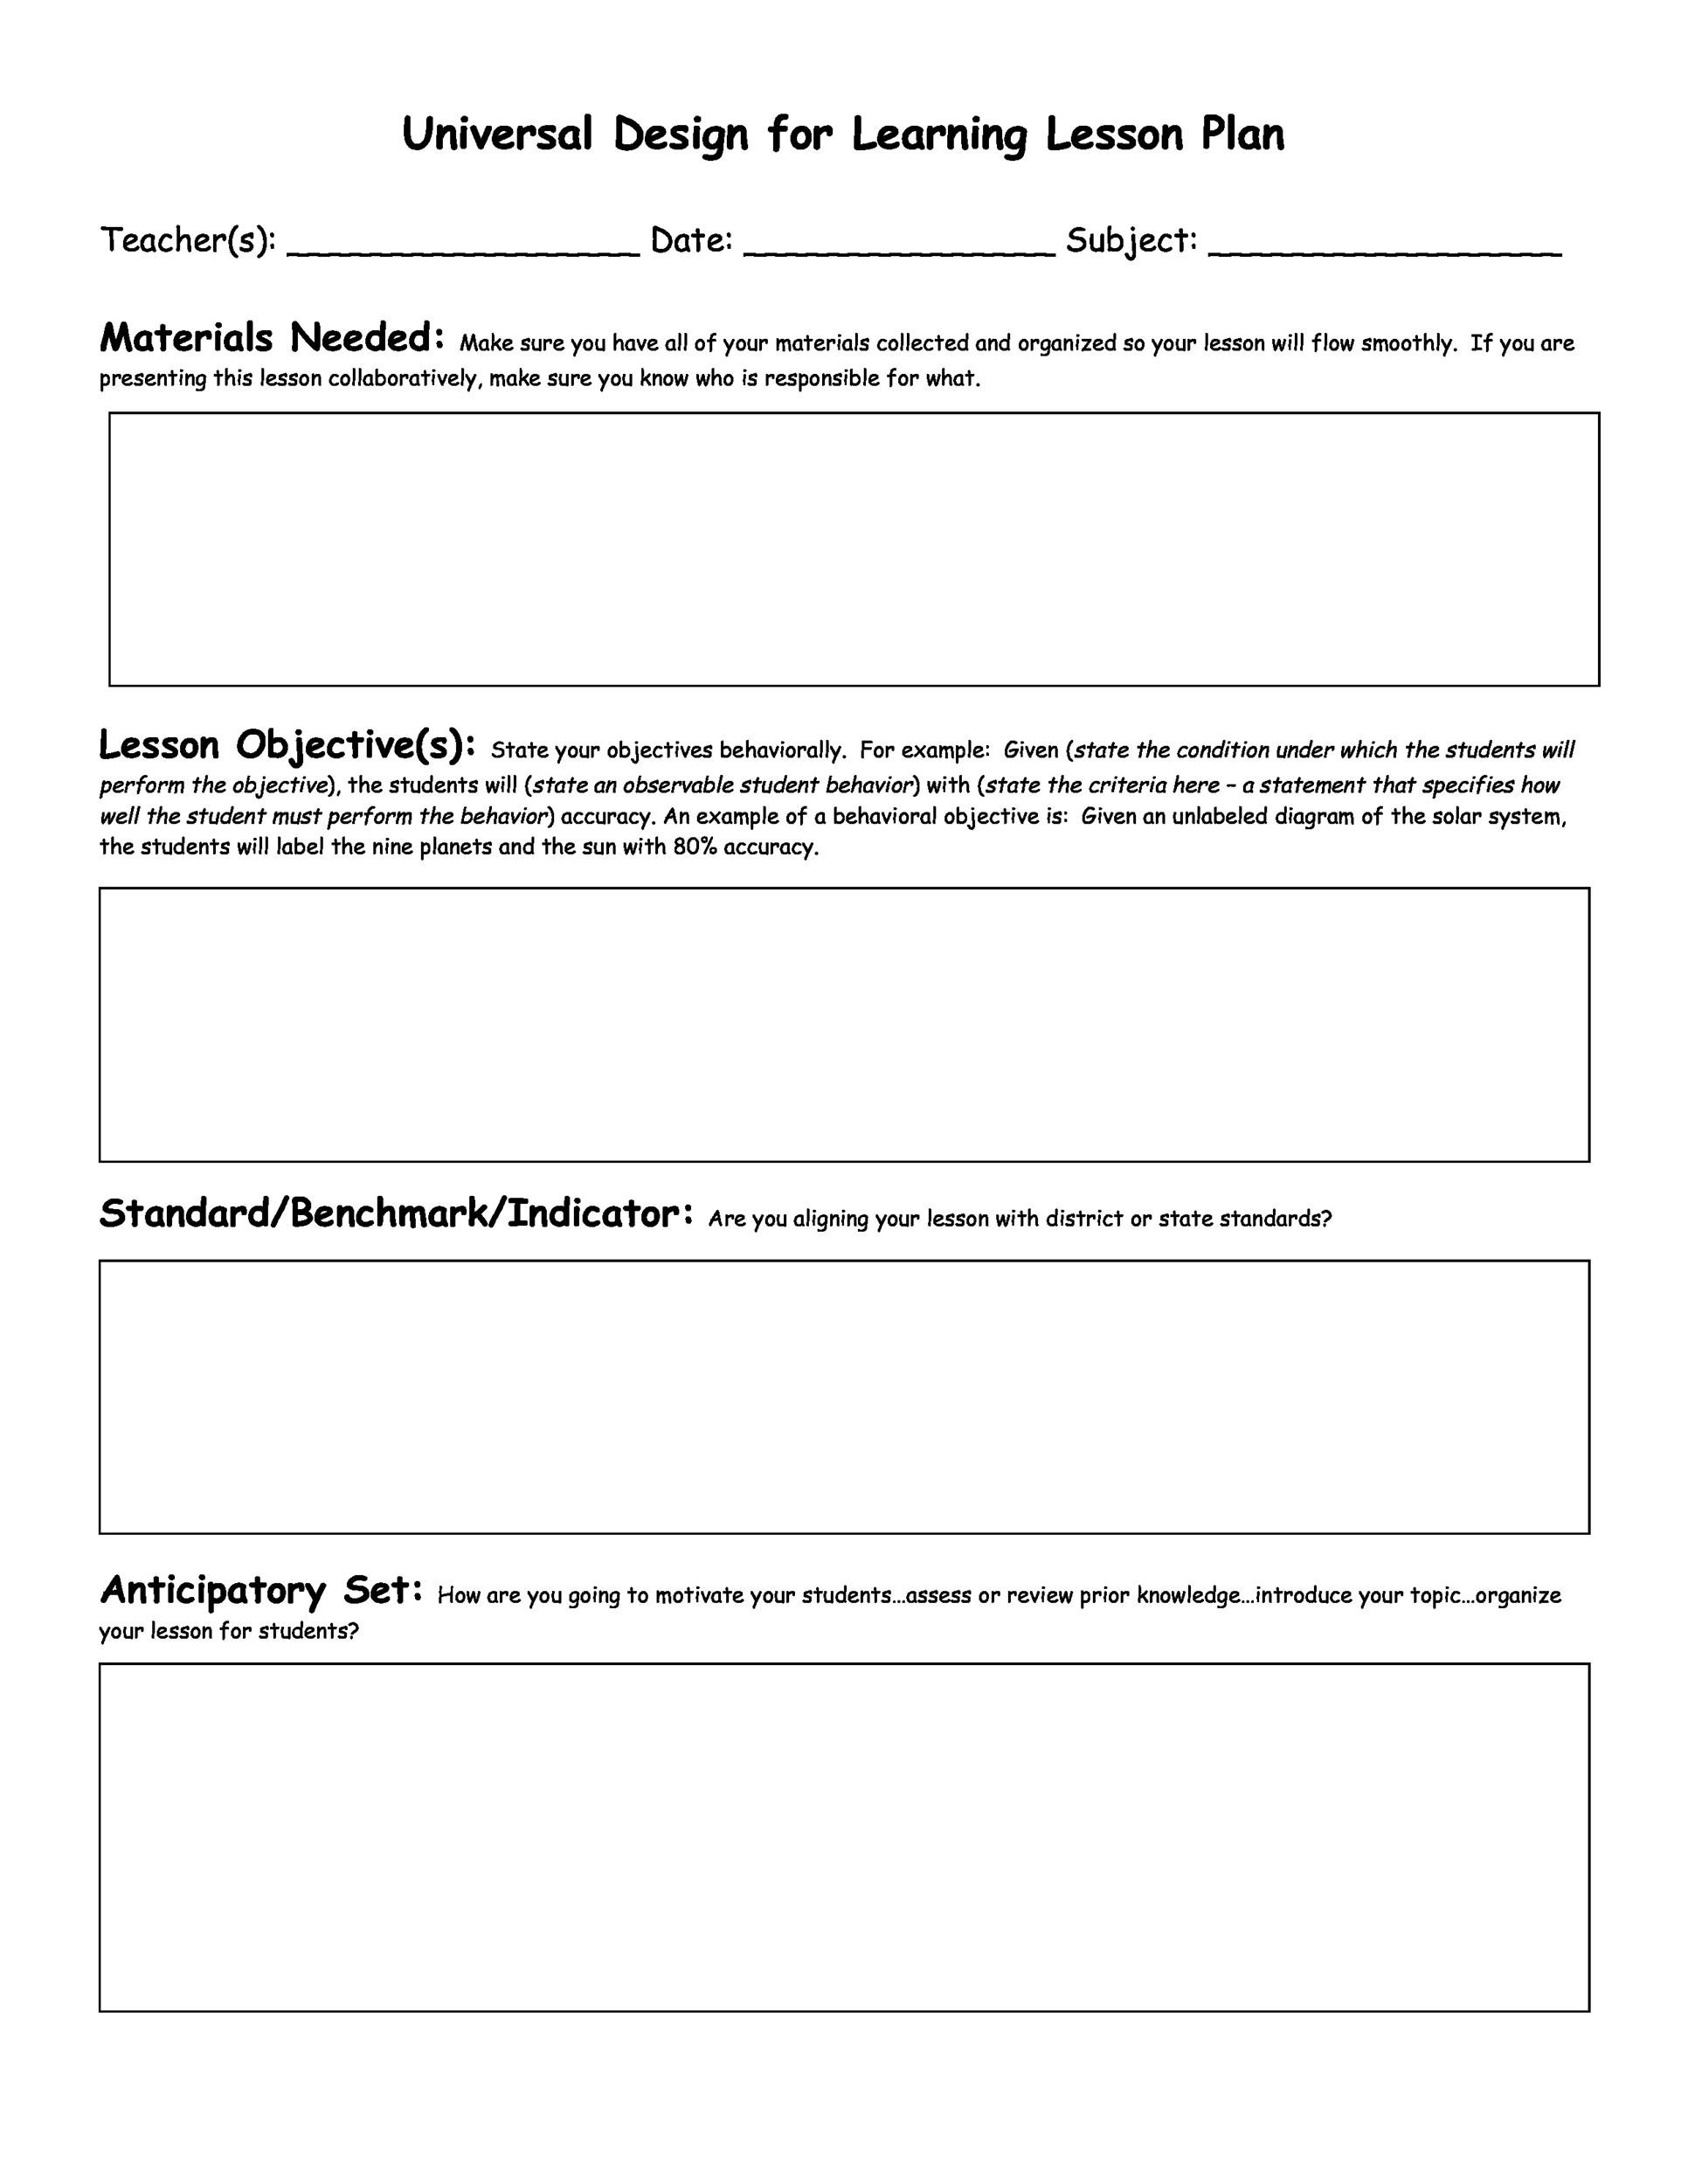 FREE Lesson Plan Templates Common Core Preschool Weekly - Lesson plan templates word